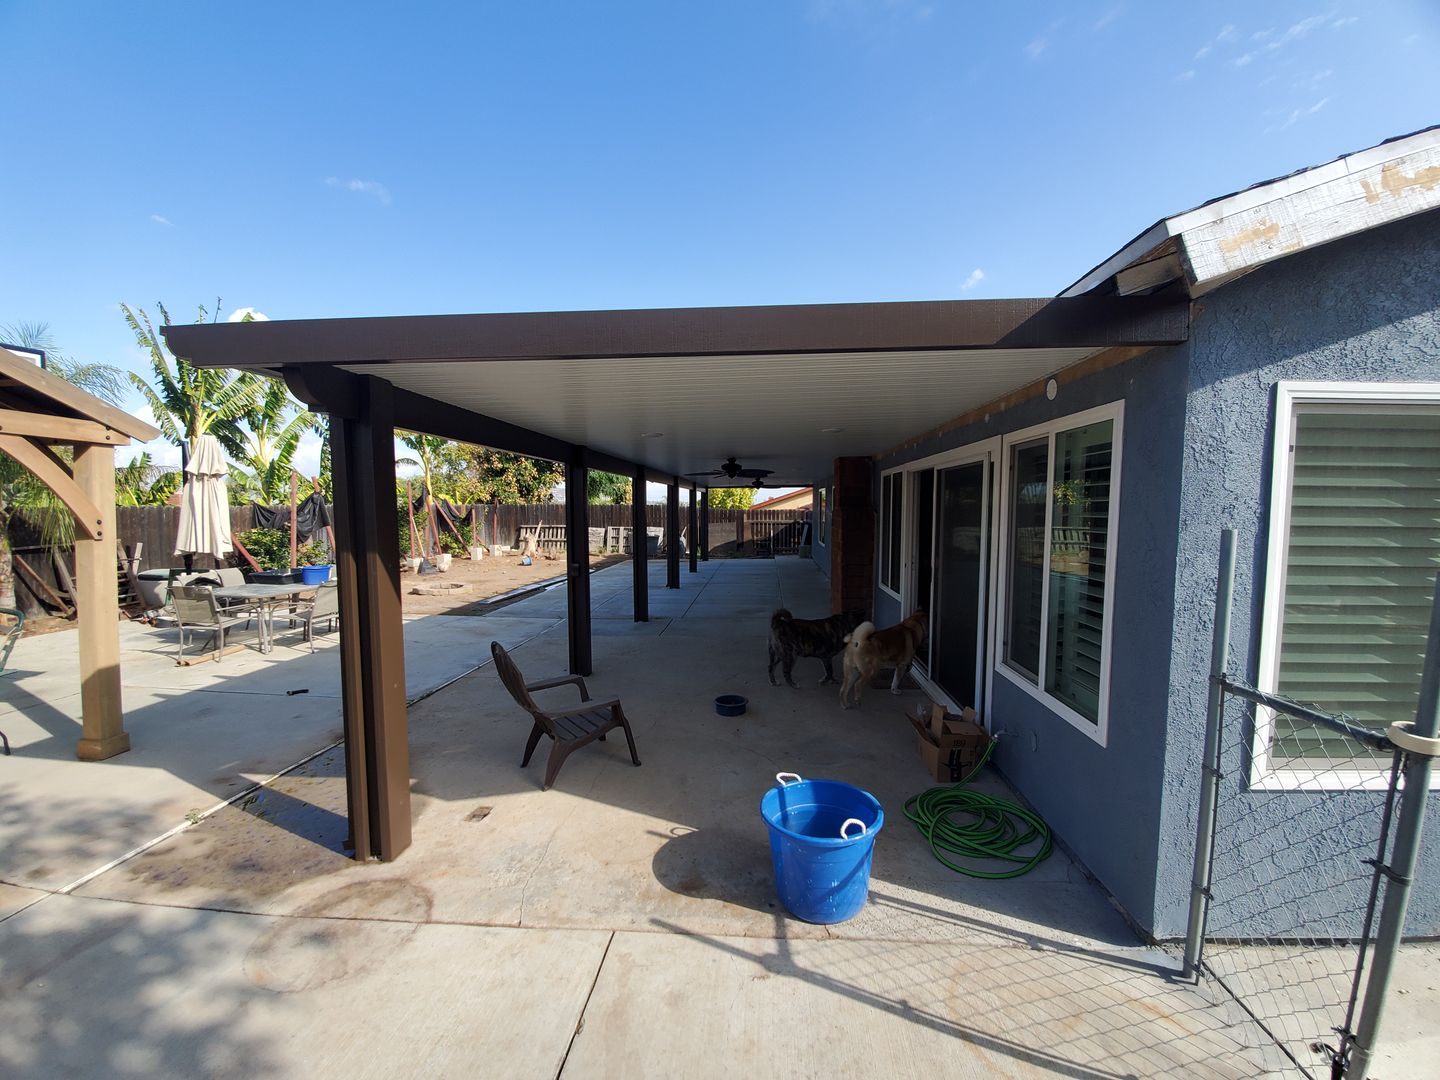 Photos Of Aluminum Patio Covers Seamless Rain Gutters throughout sizing 1440 X 1080